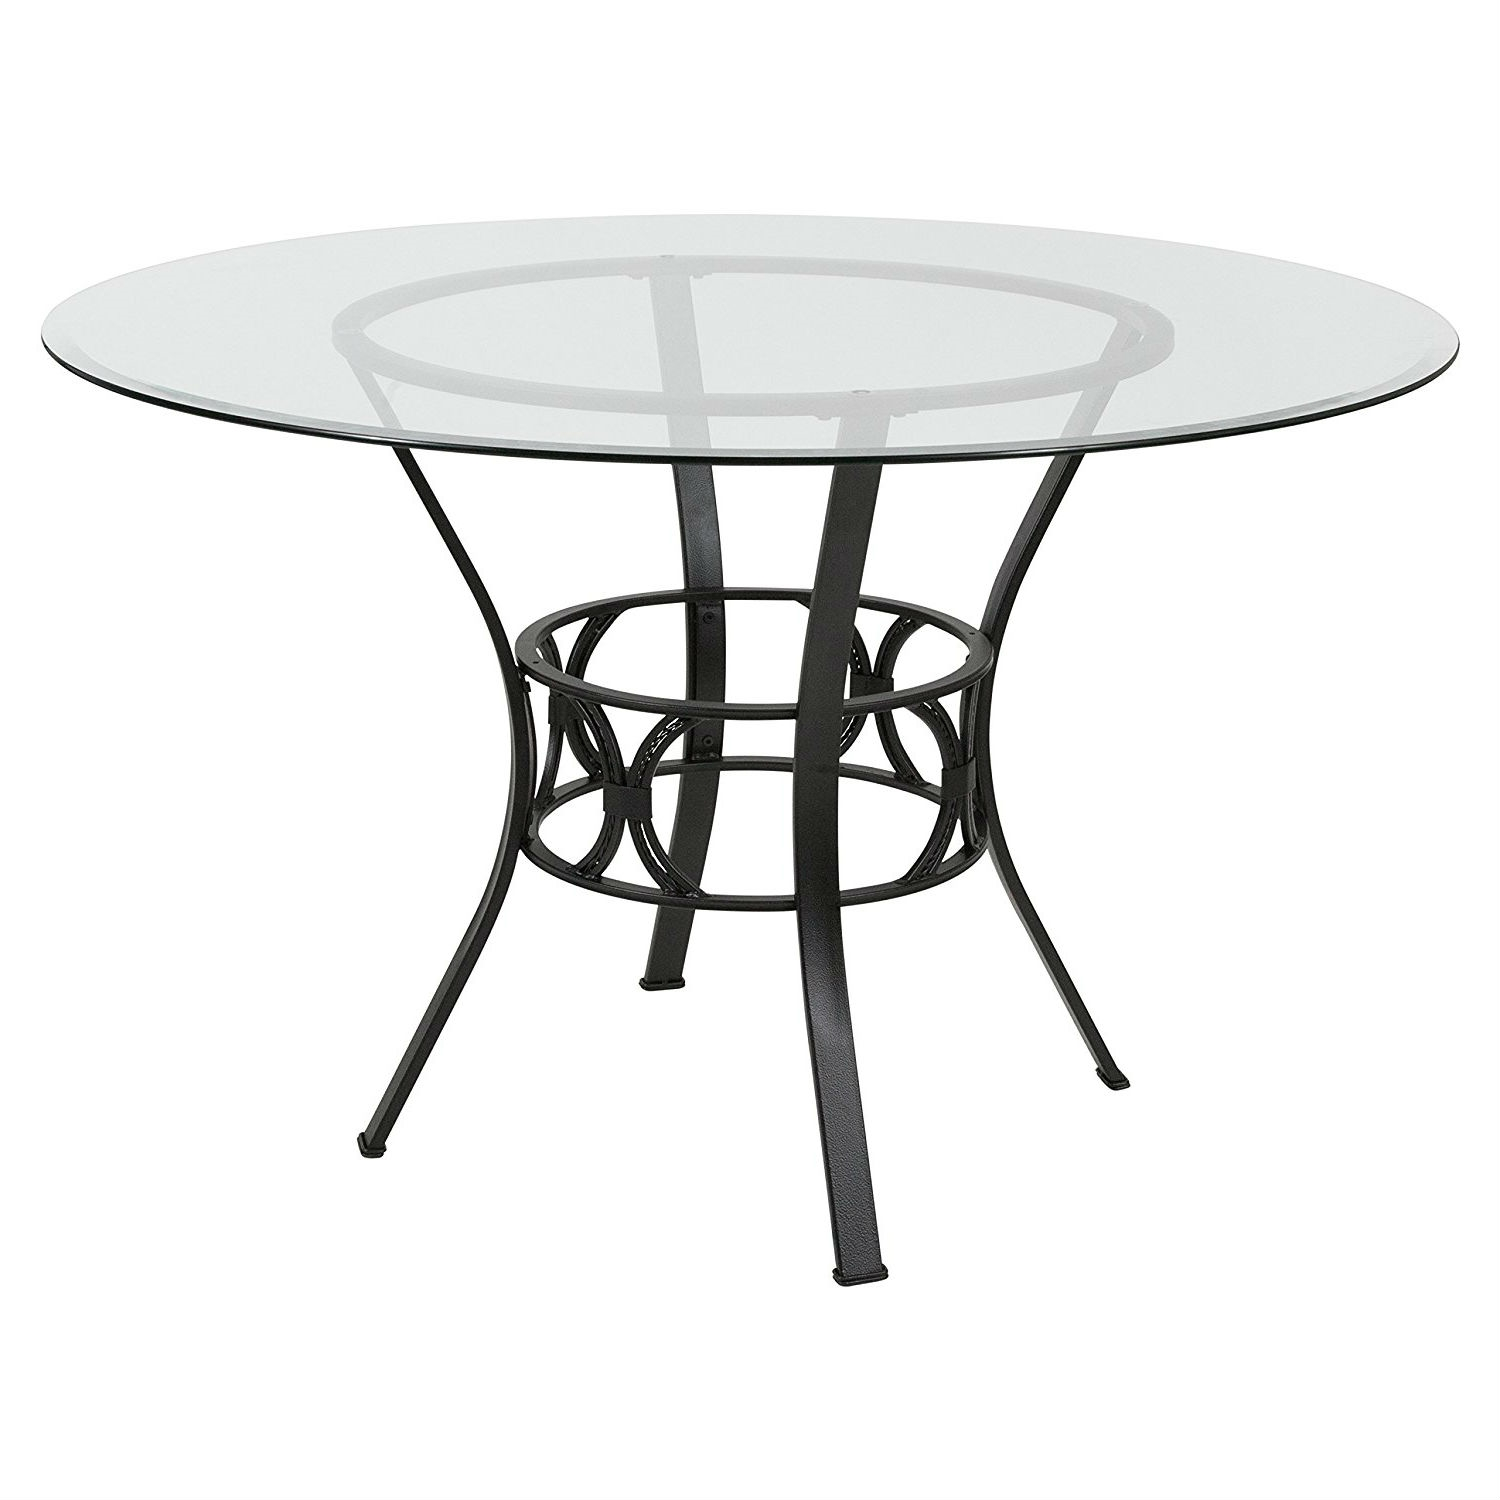 round 48 inch clear glass dining table with black metal frame